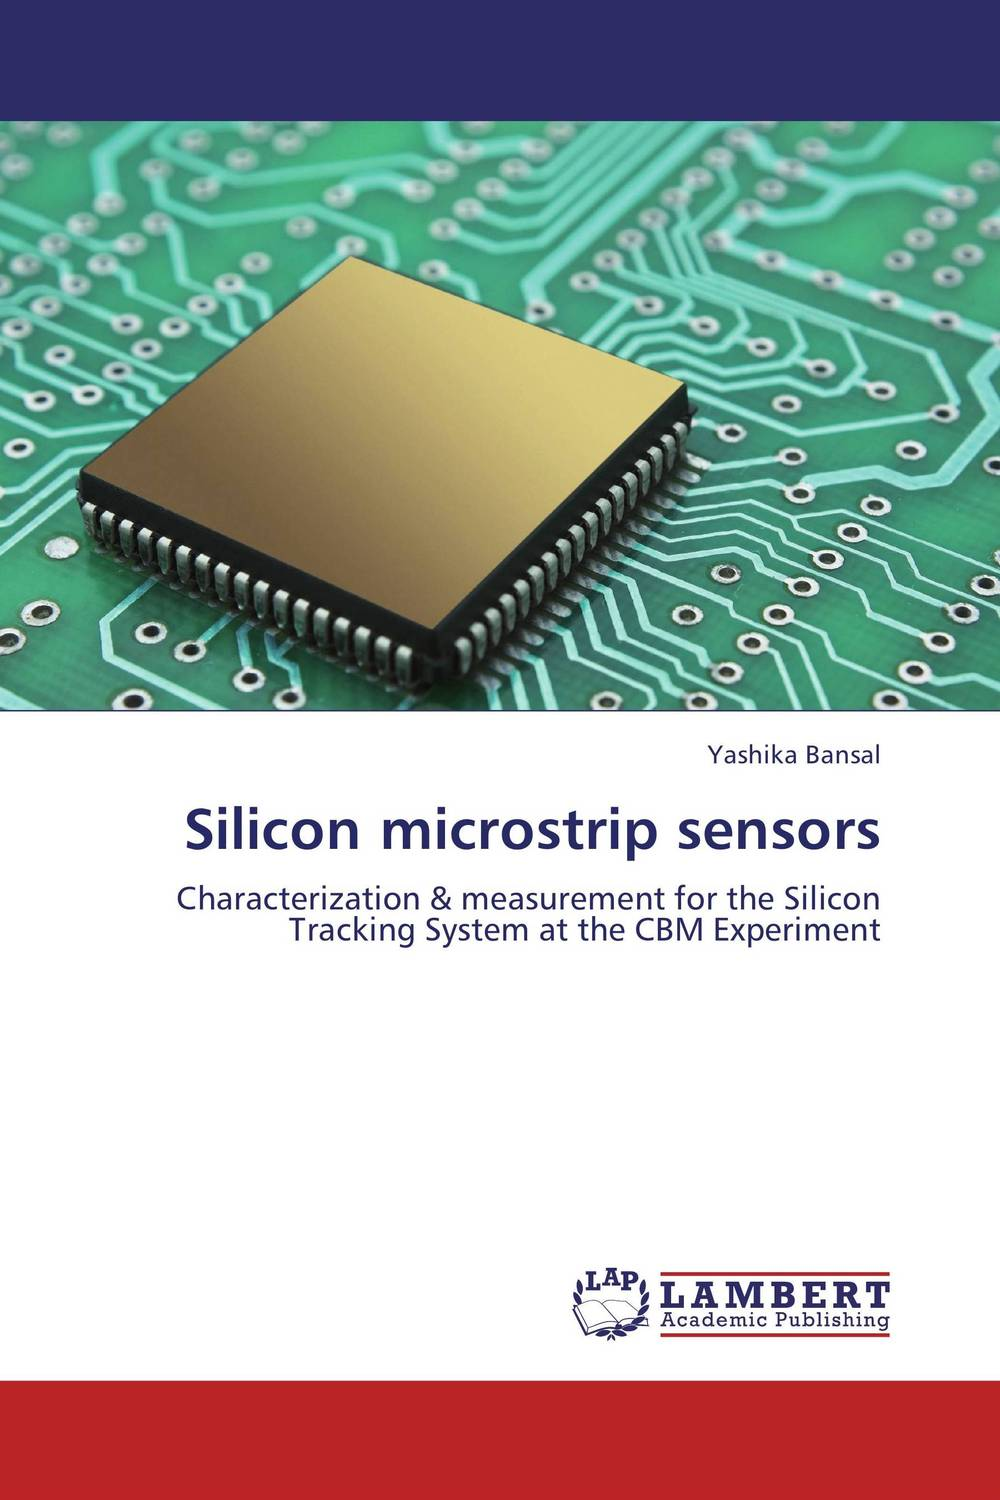 Silicon microstrip sensors fundamentals of physics extended 9th edition international student version with wileyplus set